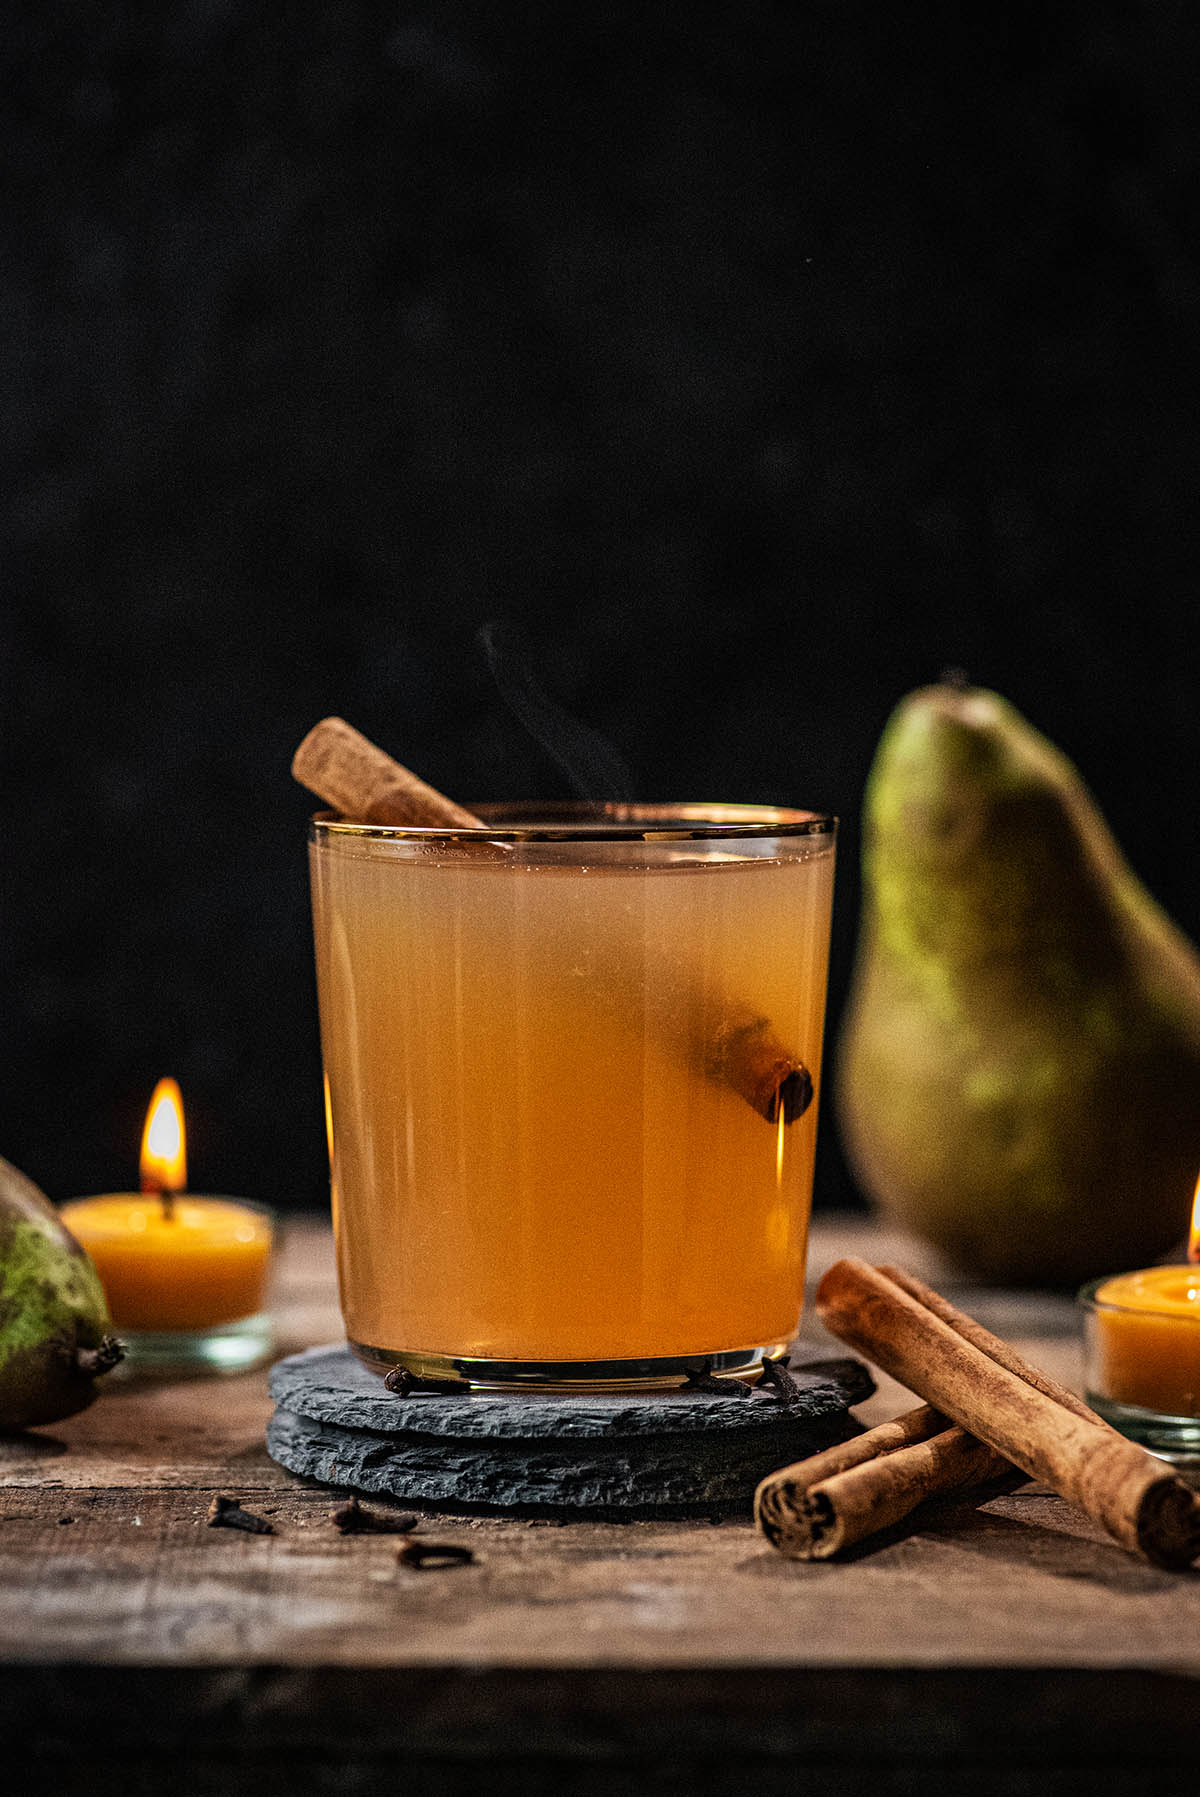 A glass of pear cider with a cinnamon stick and lit candle.